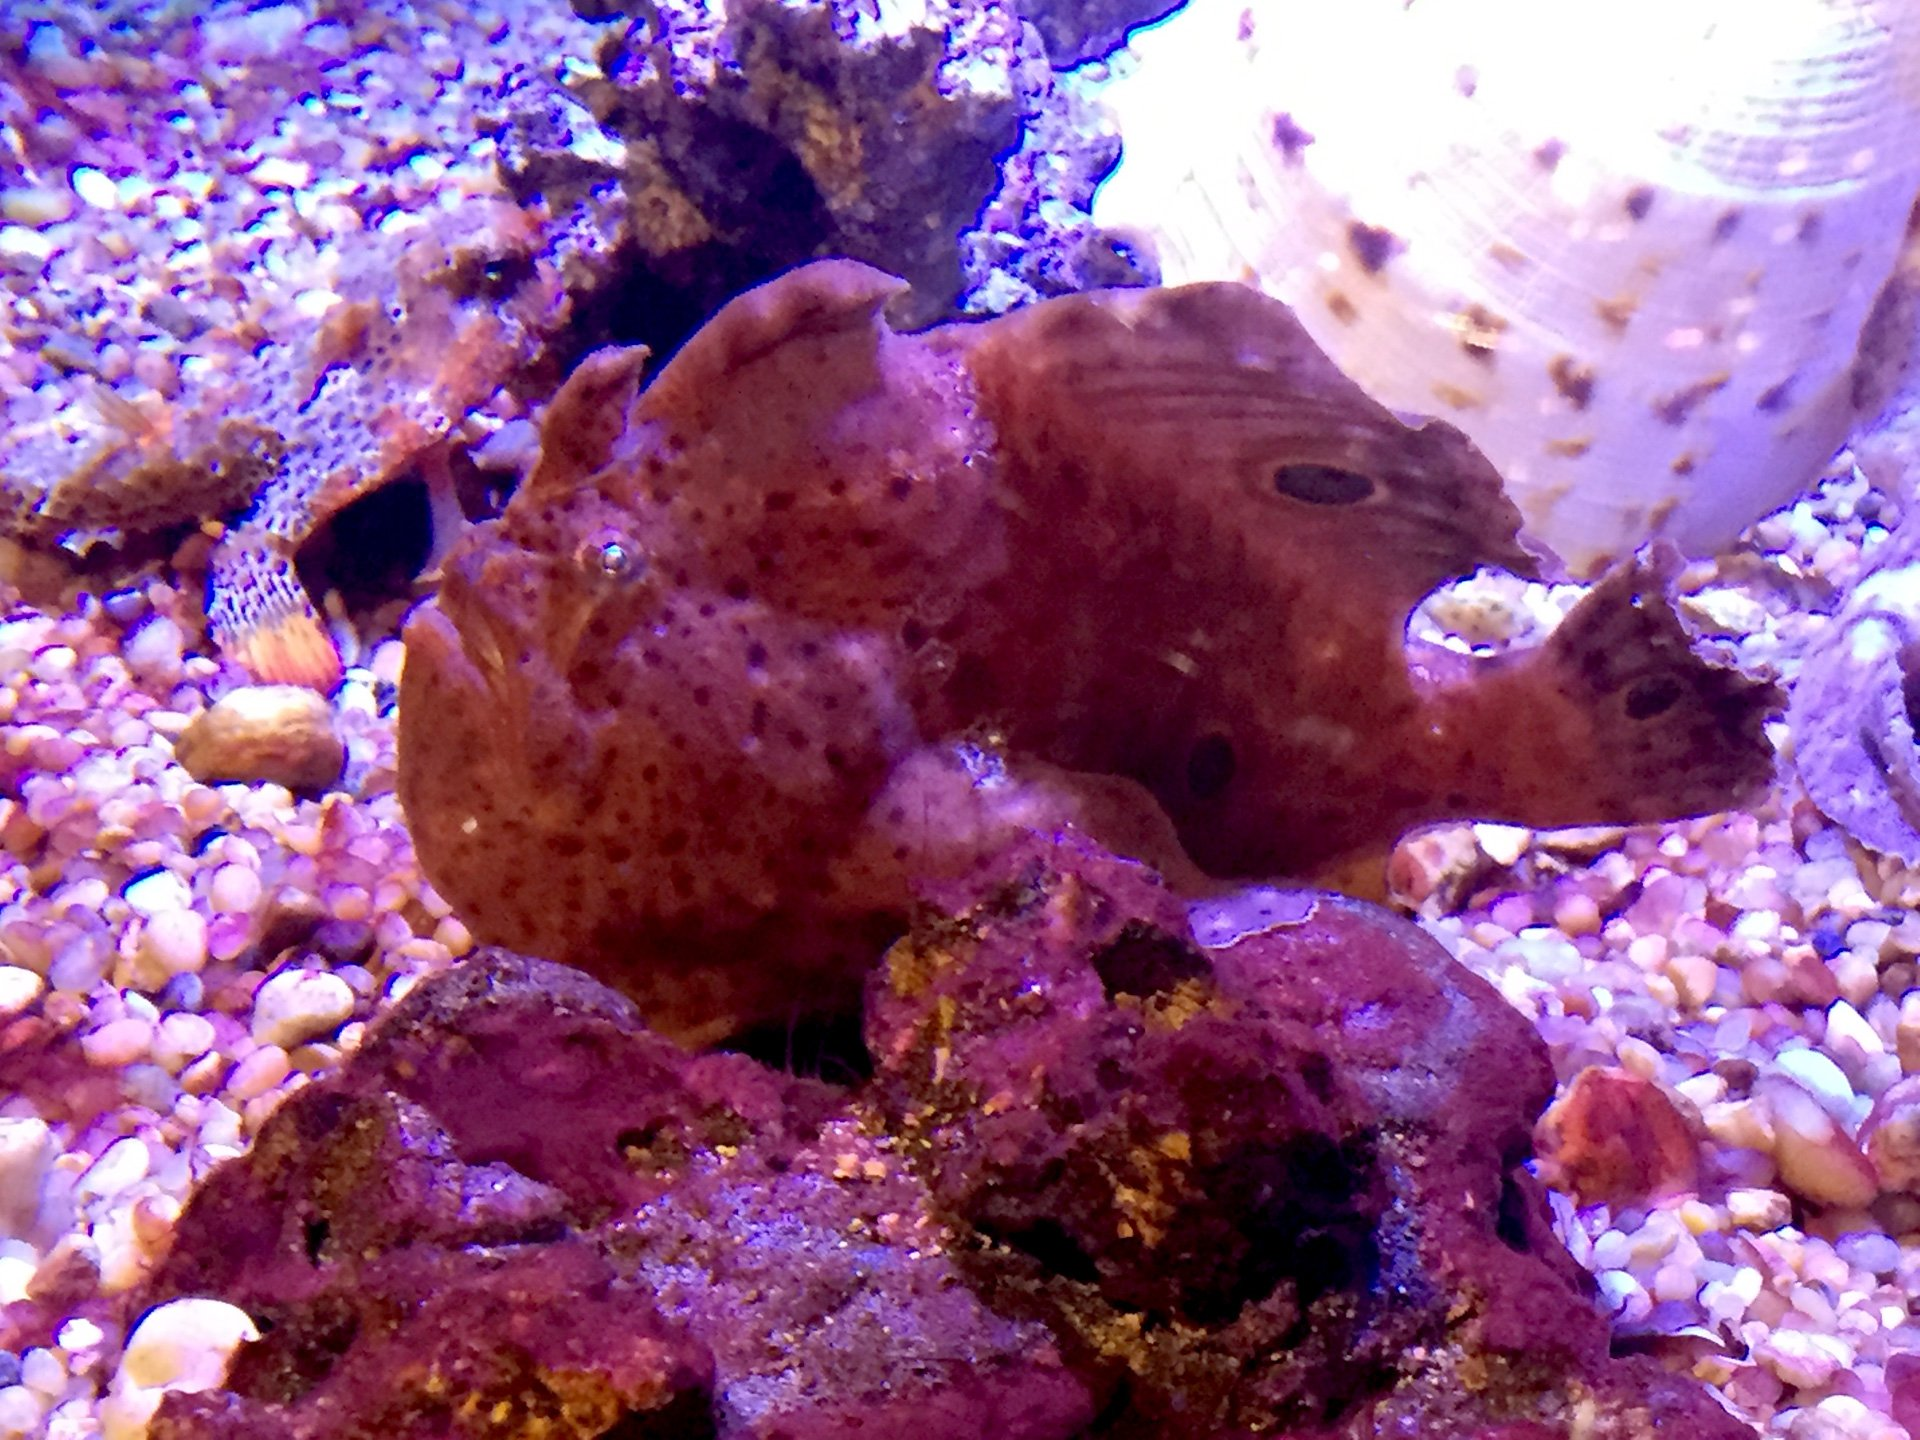 Frogfish are well-named